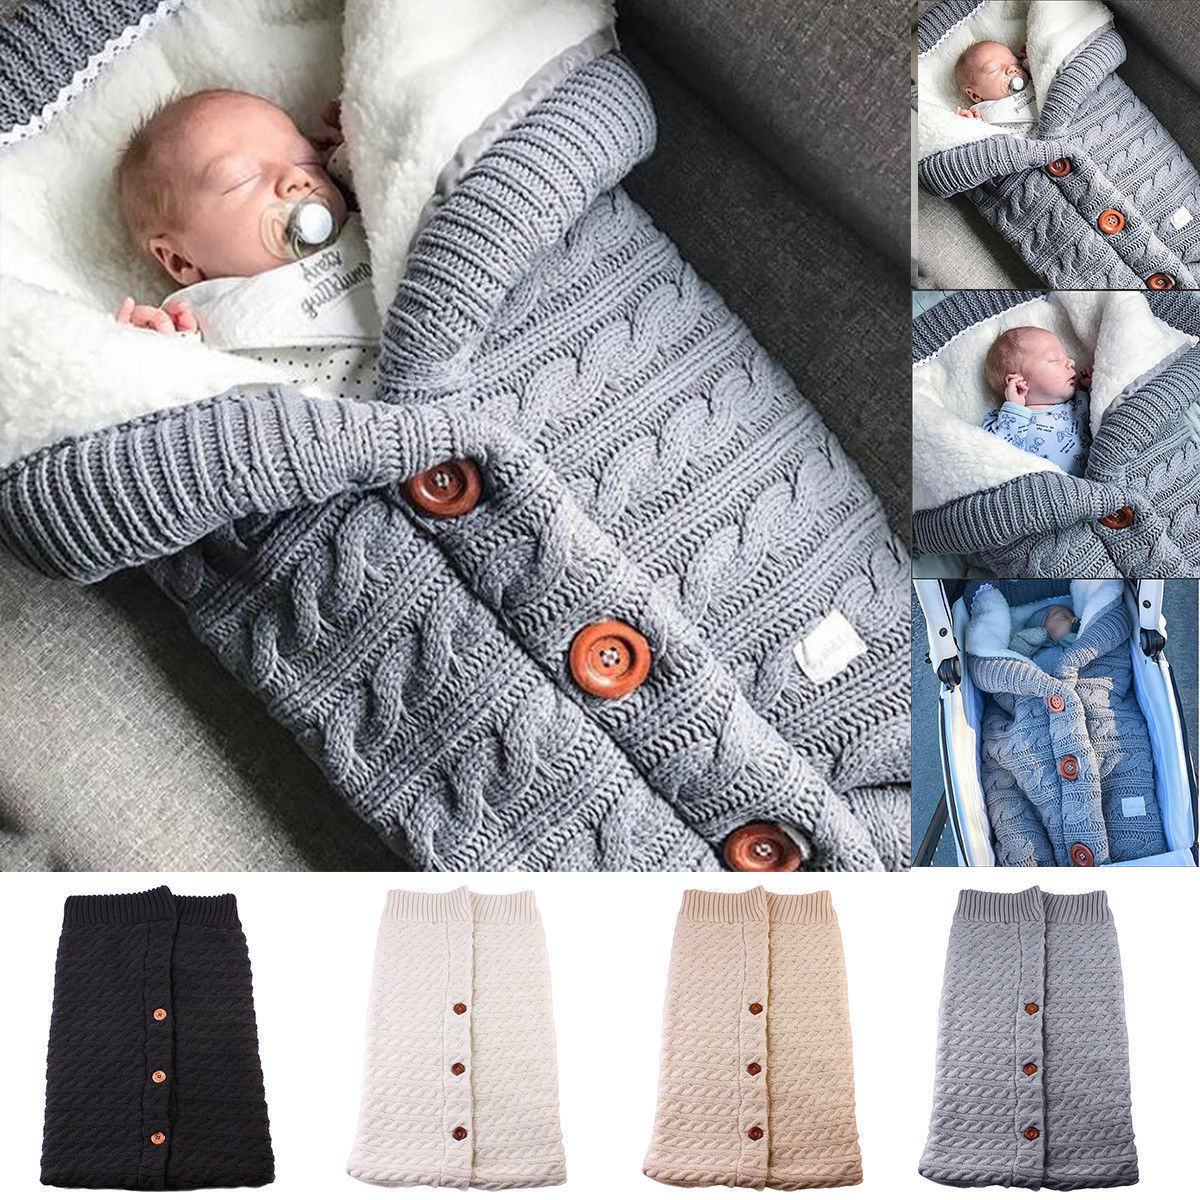 2019 Hot Sale Newborn Baby Winter Warm Bags Infant Button Knit Swaddle Wrap Swaddling Stroller Toddler Blanket Sleeping Bags